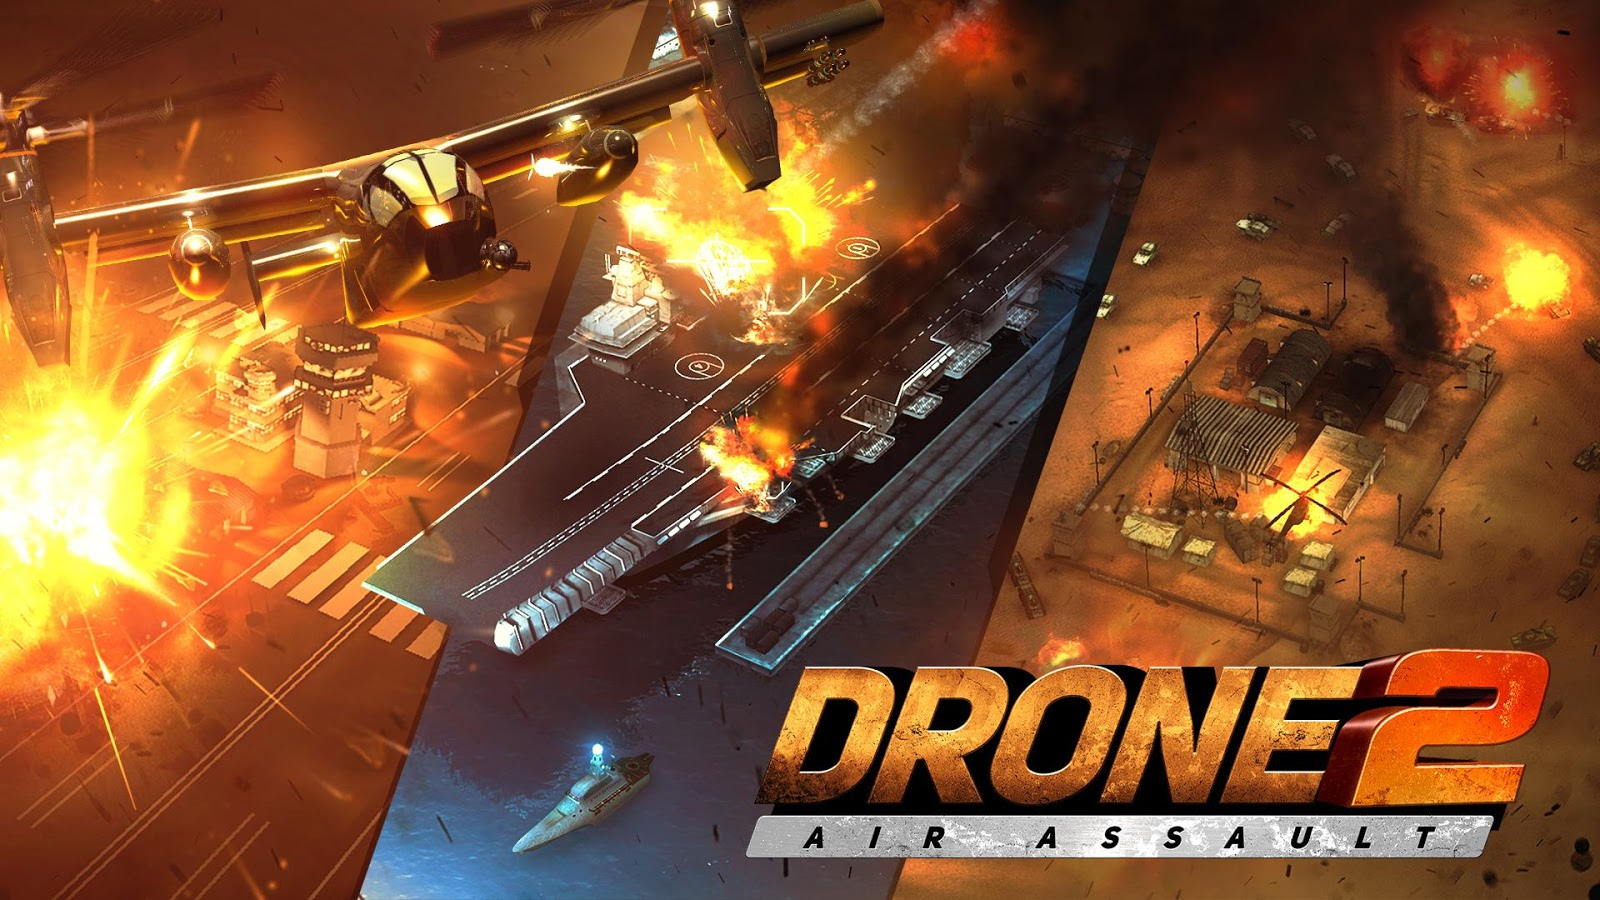 Drone 2 Air Assault (Unreleased) Screenshot